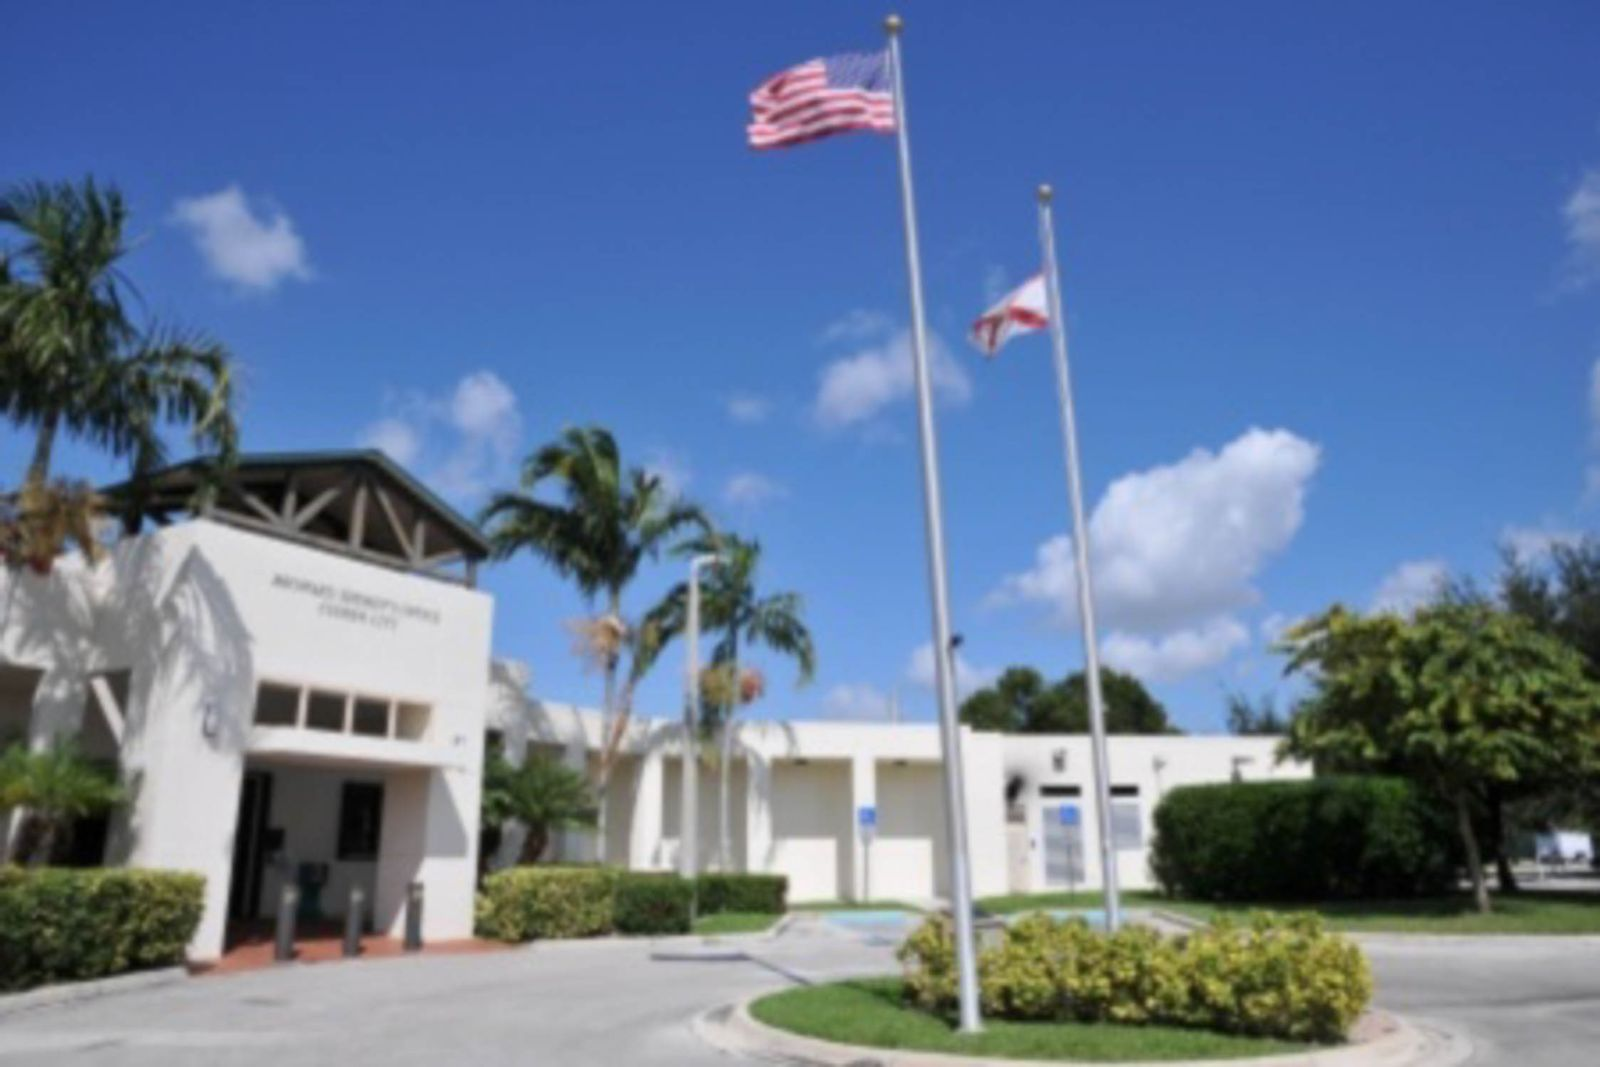 Cooper City Broward Sheriff's District - you need a criminal defense attorney for criminal charges in cooper city